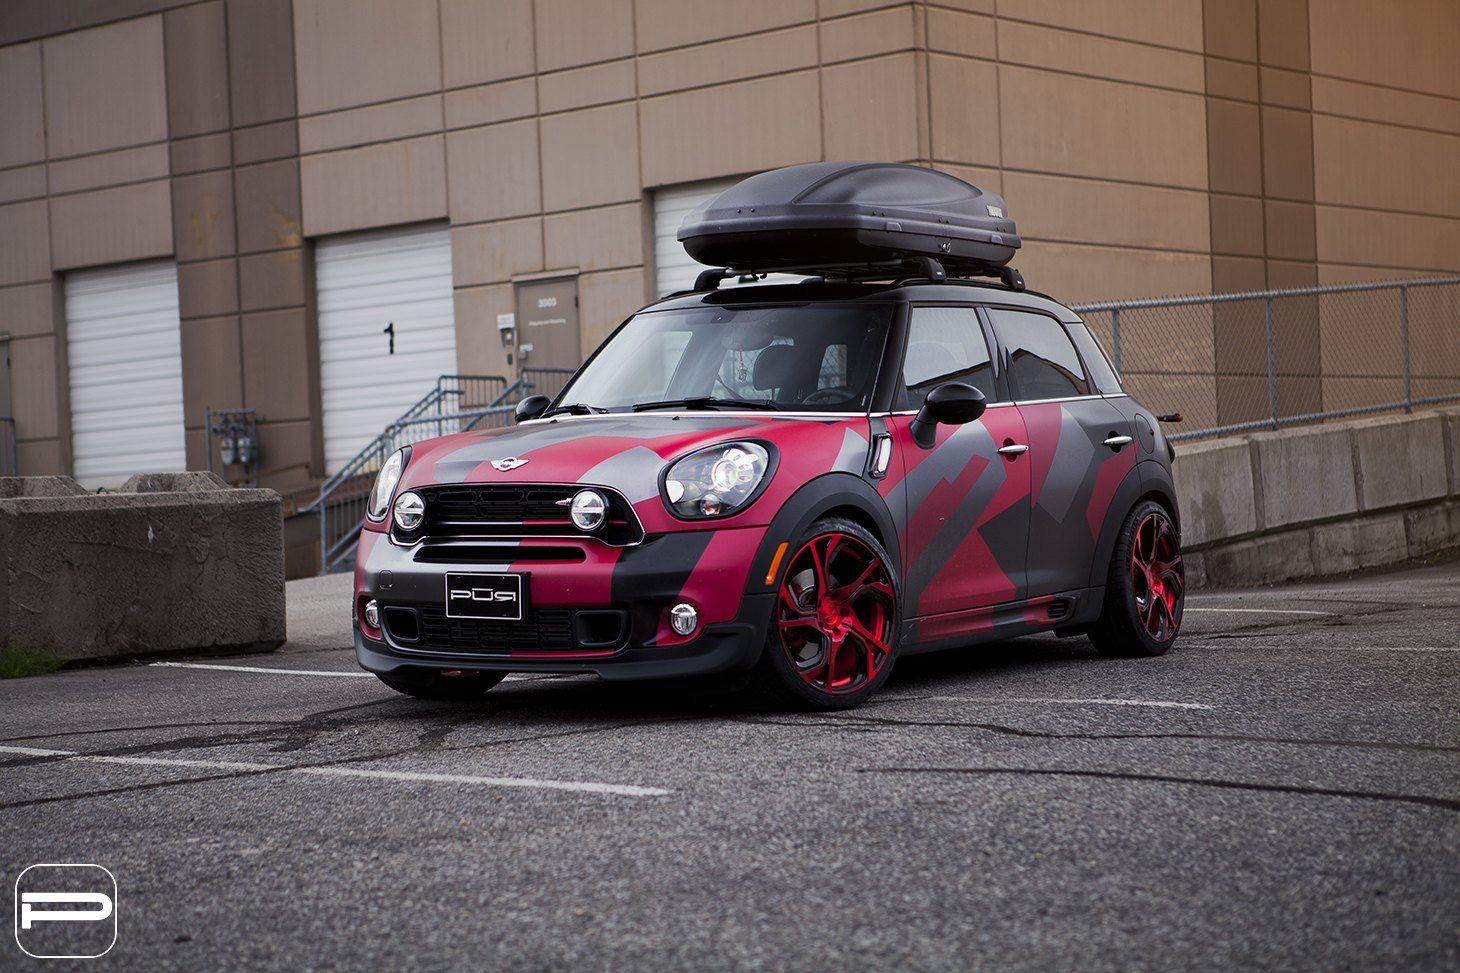 Truly Unique Custom Paint On Mini Countryman With Roof Rack That Grabs Attention Mini Countryman Roof Rack Custom Paint